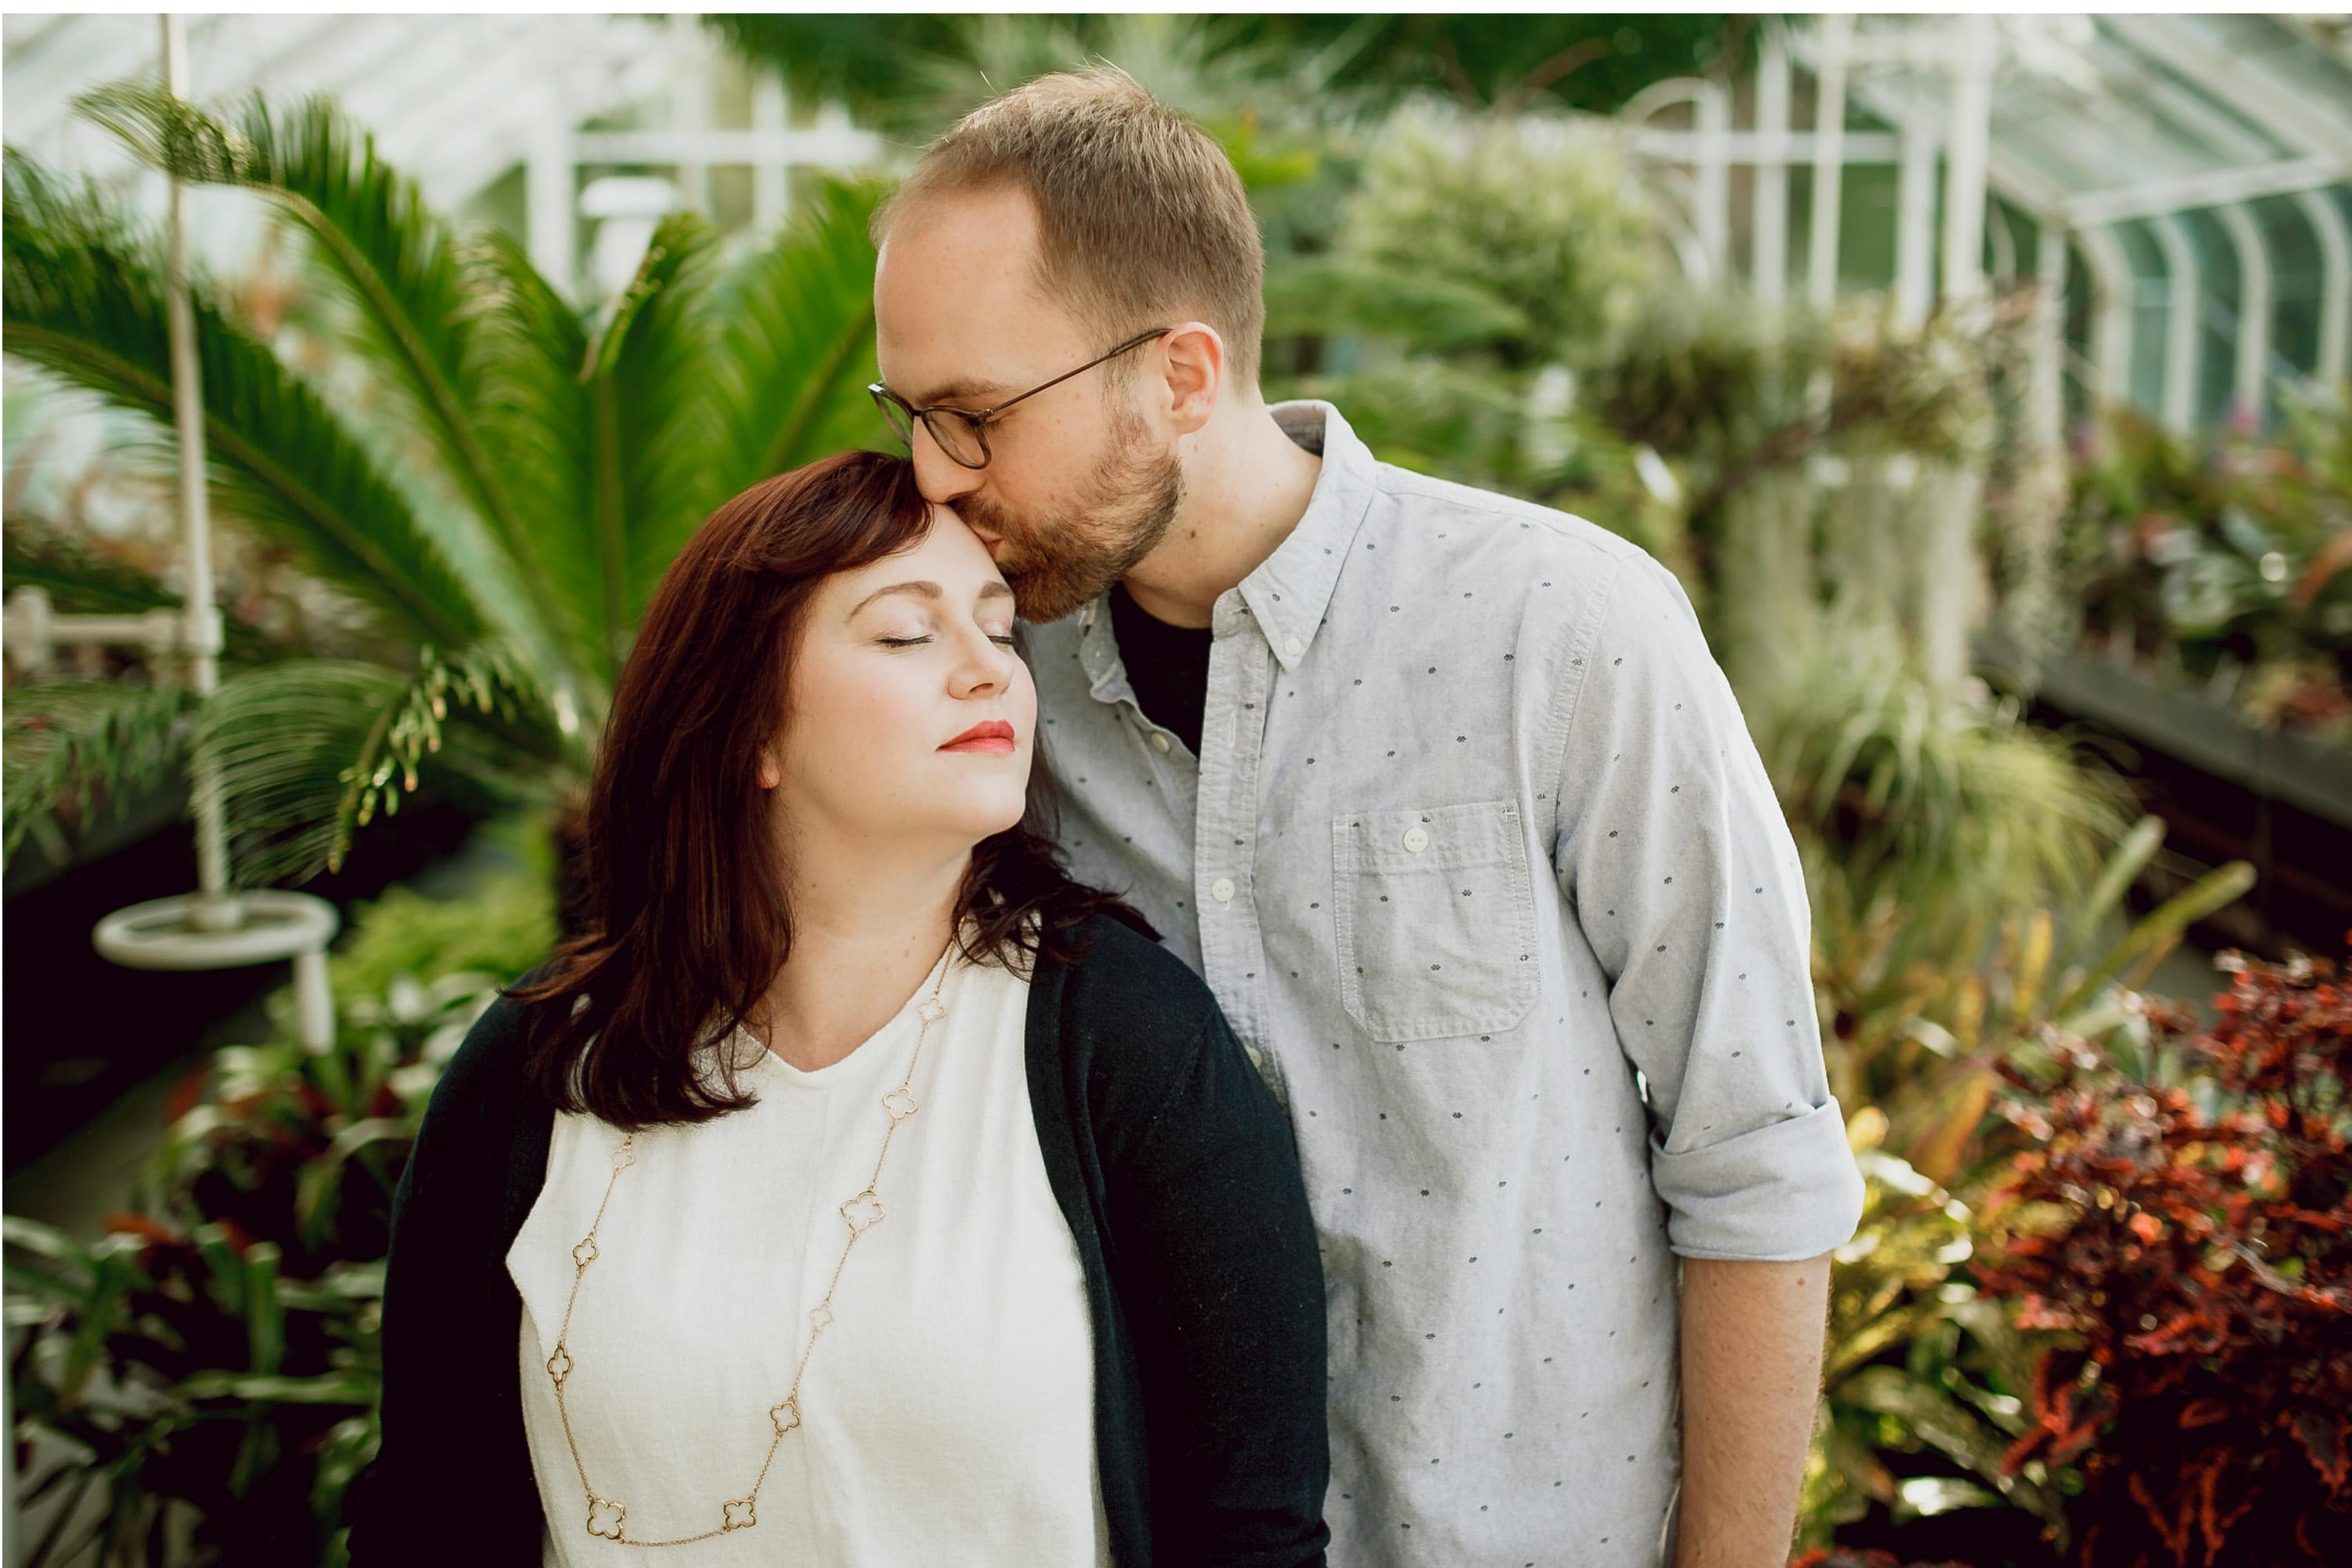 kiss on the forehead seattle engagement photo at conservatory in volunteer park